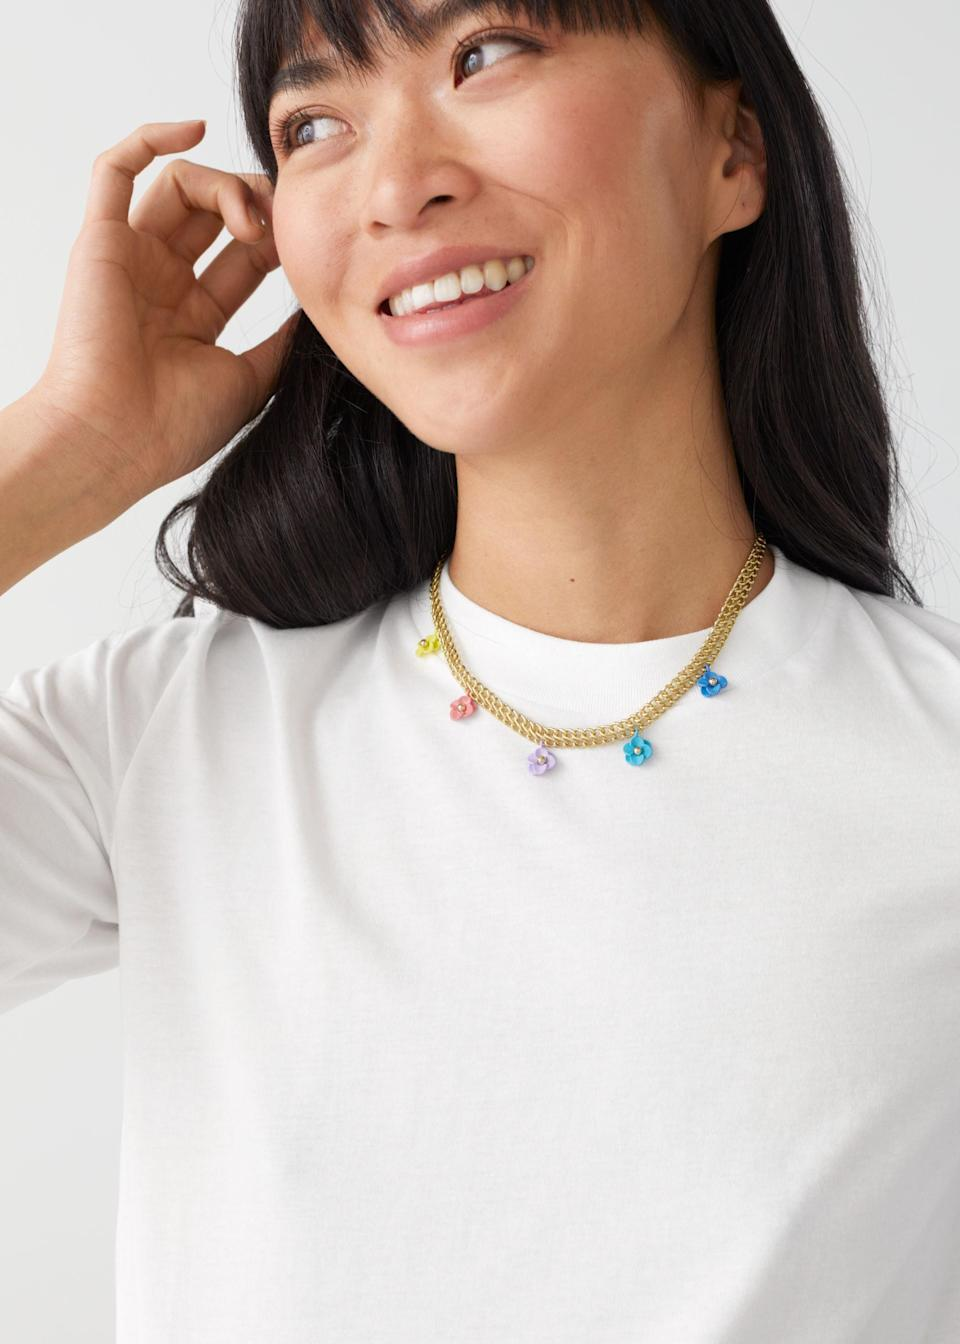 """When the weather's dreary, instantly brighten your neckline (and mood) with this multicolored daisy chain necklace. $49, & Other Stories. <a href=""""https://www.stories.com/en_usd/jewellery/necklaces/product.mini-flower-pendant-chain-necklace-gold.0916806001.html"""" rel=""""nofollow noopener"""" target=""""_blank"""" data-ylk=""""slk:Get it now!"""" class=""""link rapid-noclick-resp"""">Get it now!</a>"""